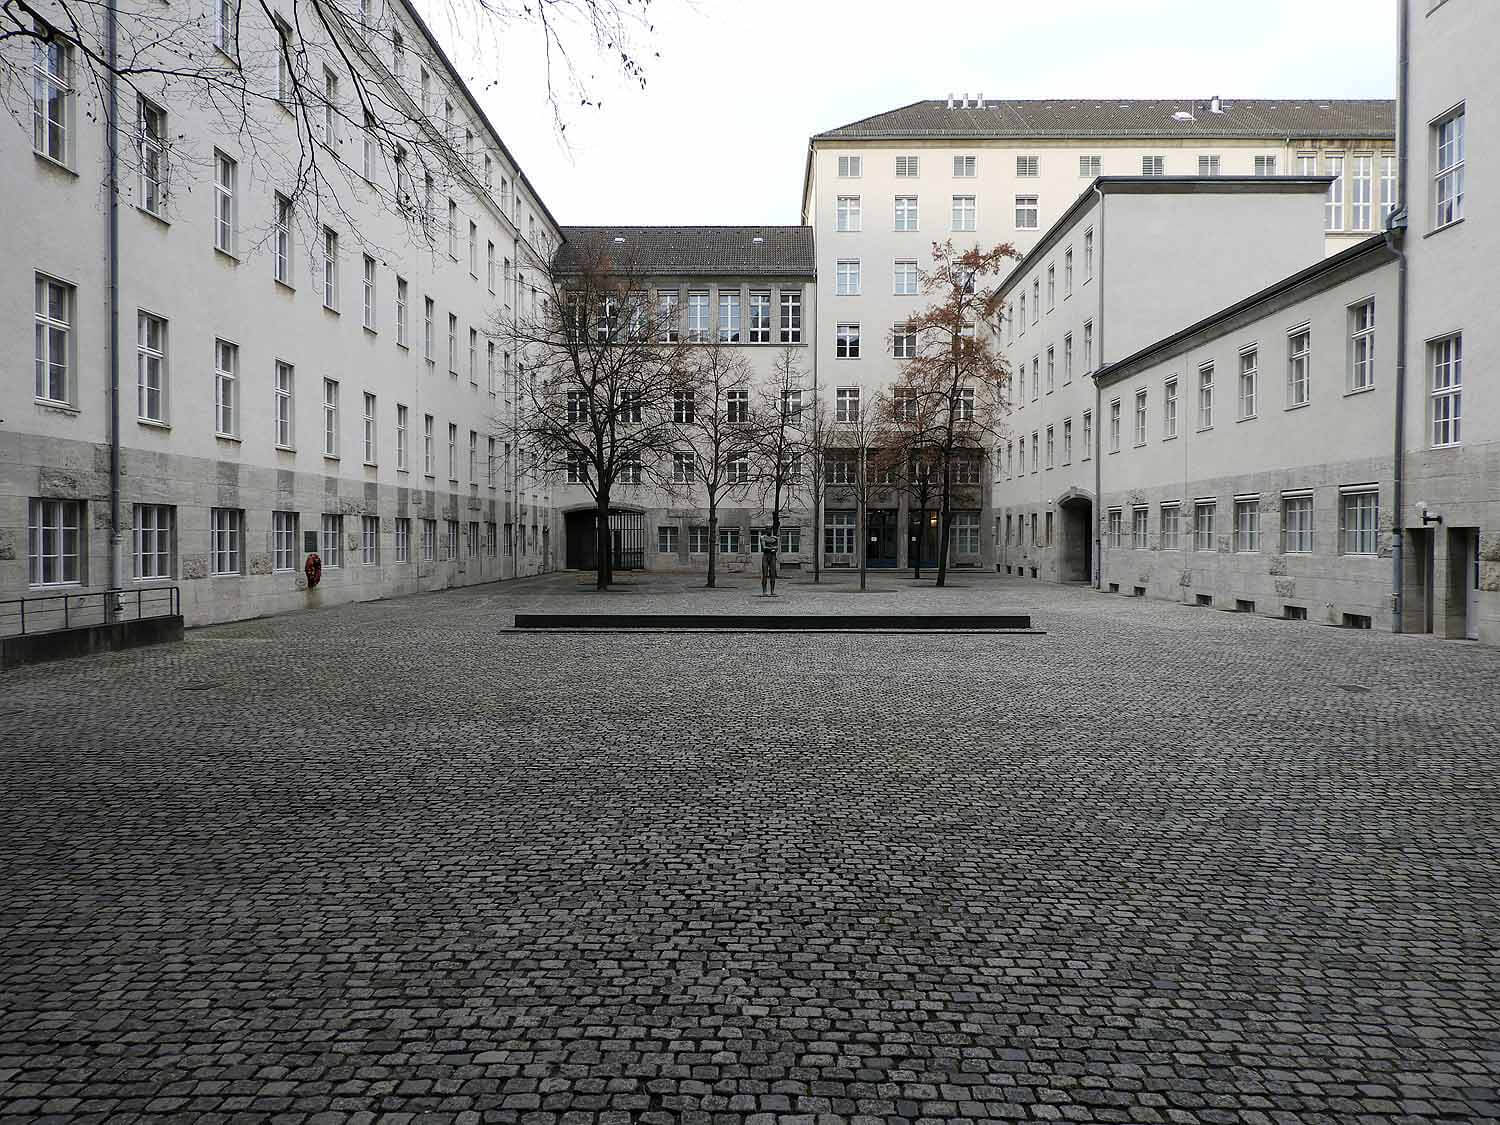 - Memorial to the German Resistance